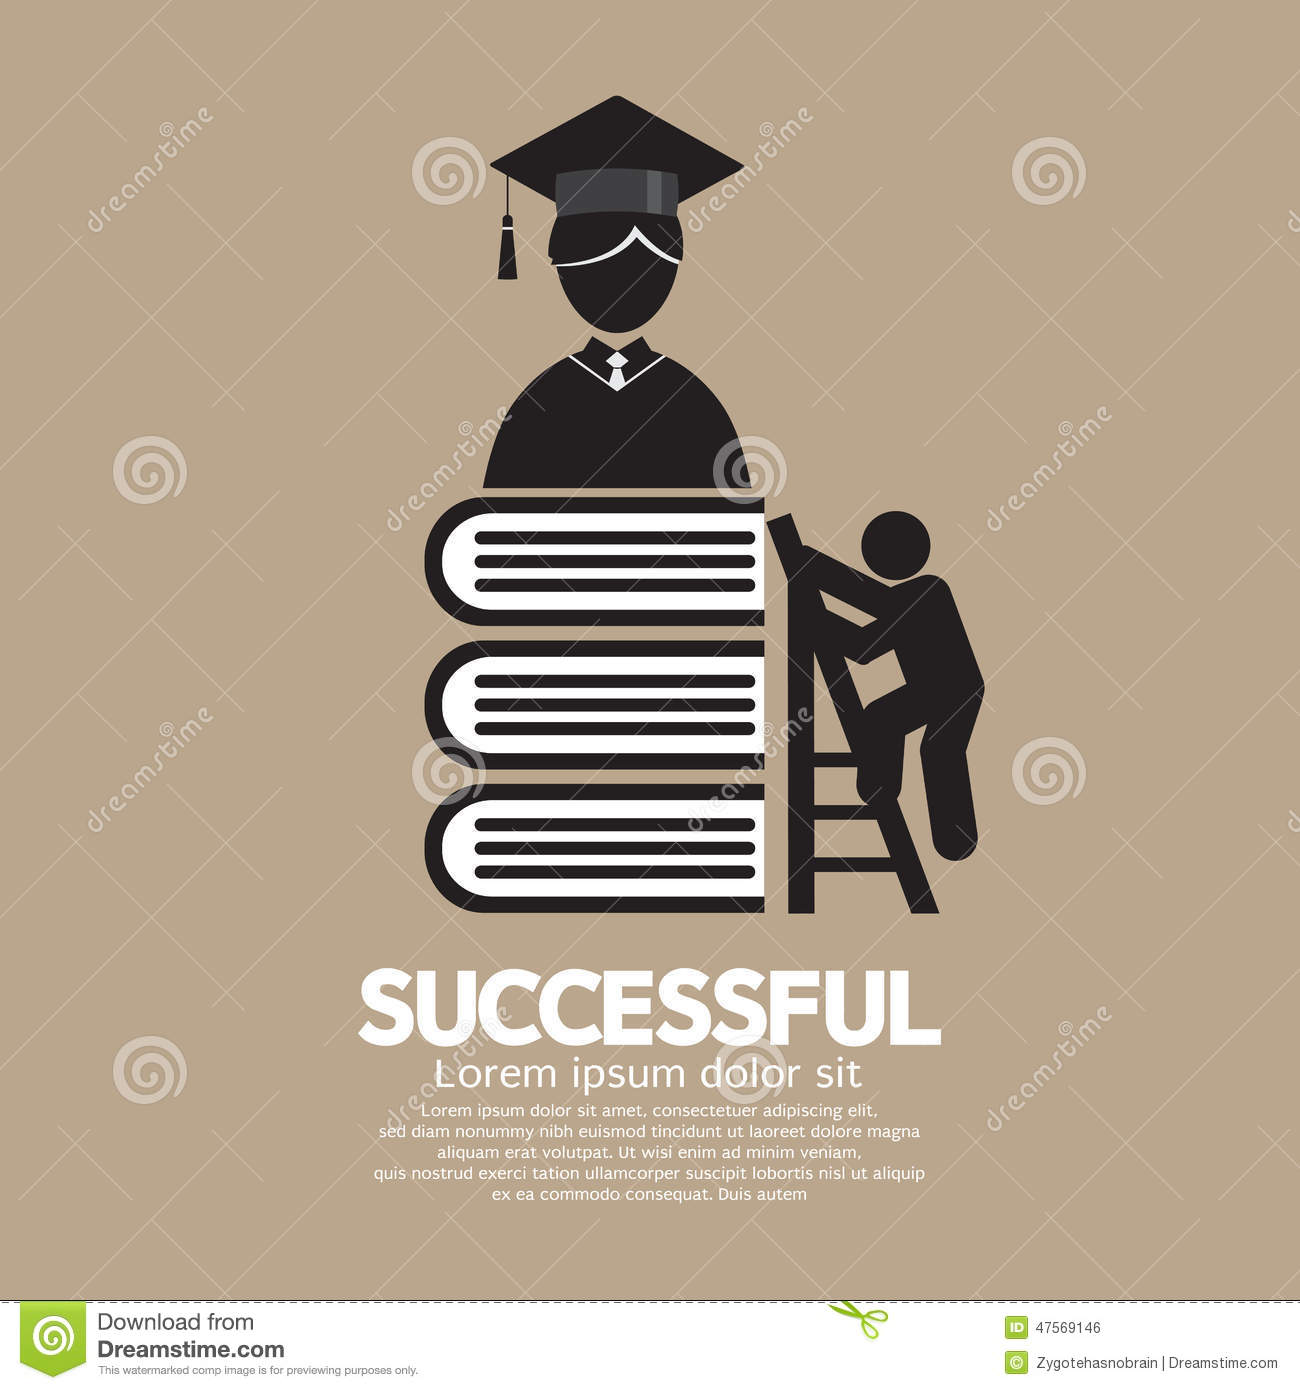 successful education Successful education solutions is a low-cost college planning service helping students find the best college match and a competitive edge for admissions.